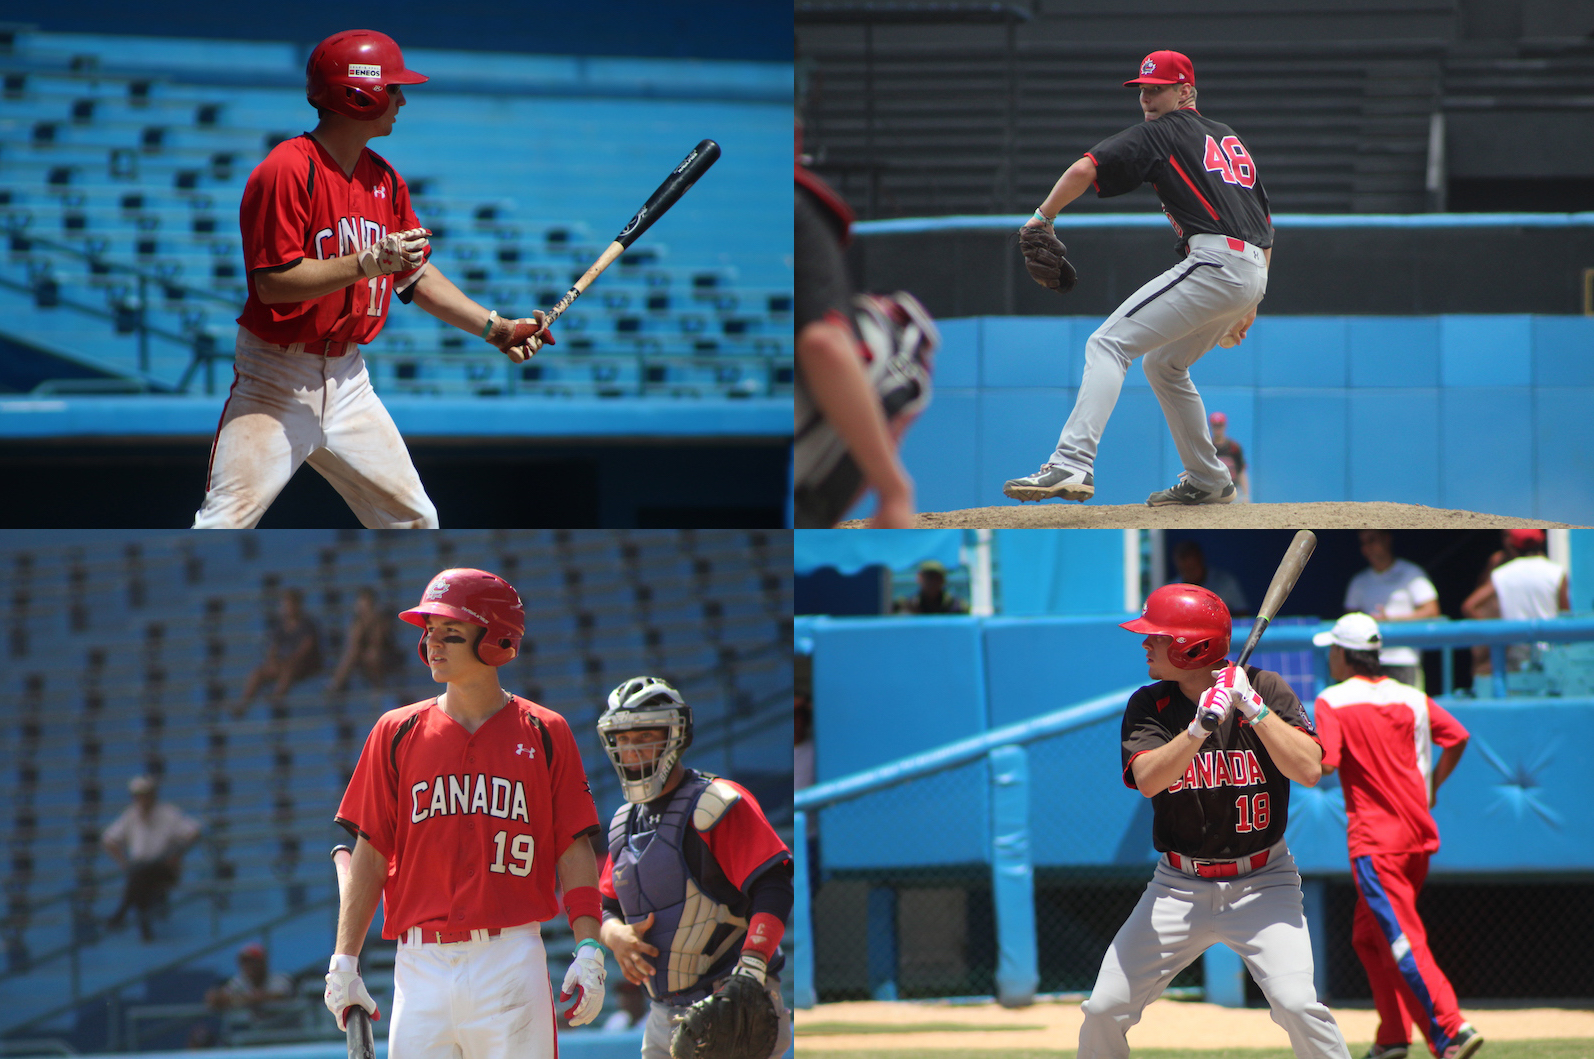 Four Junior National Team players make Baseball America's High School Top 100